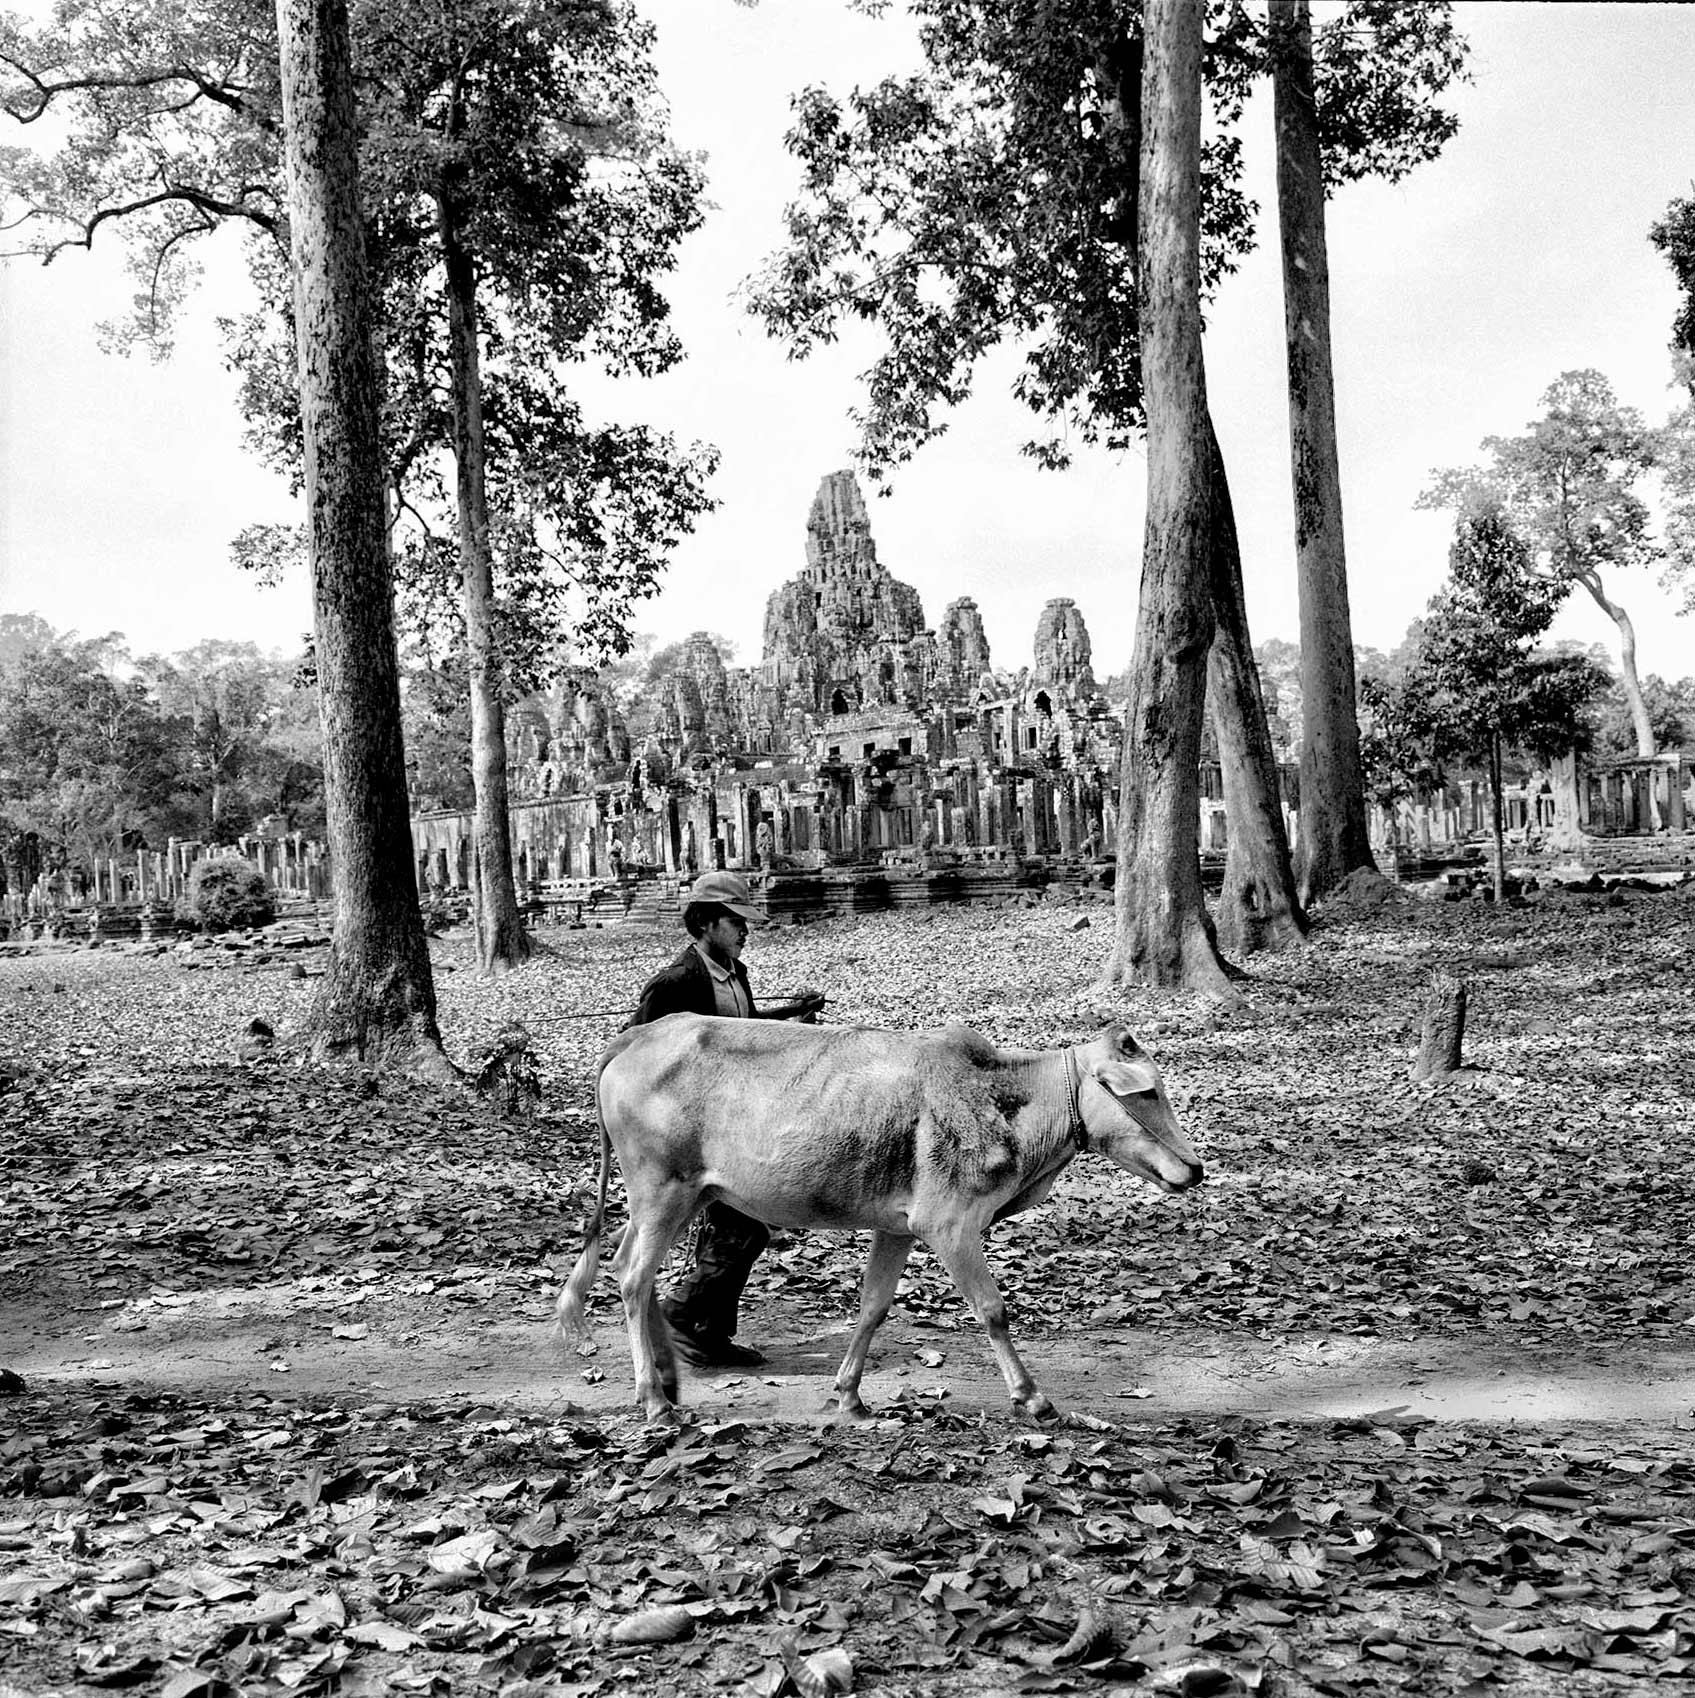 a-man-walks-his-cow-on-a-pathway-past-the-temple-at-angkor-wat-cambodia